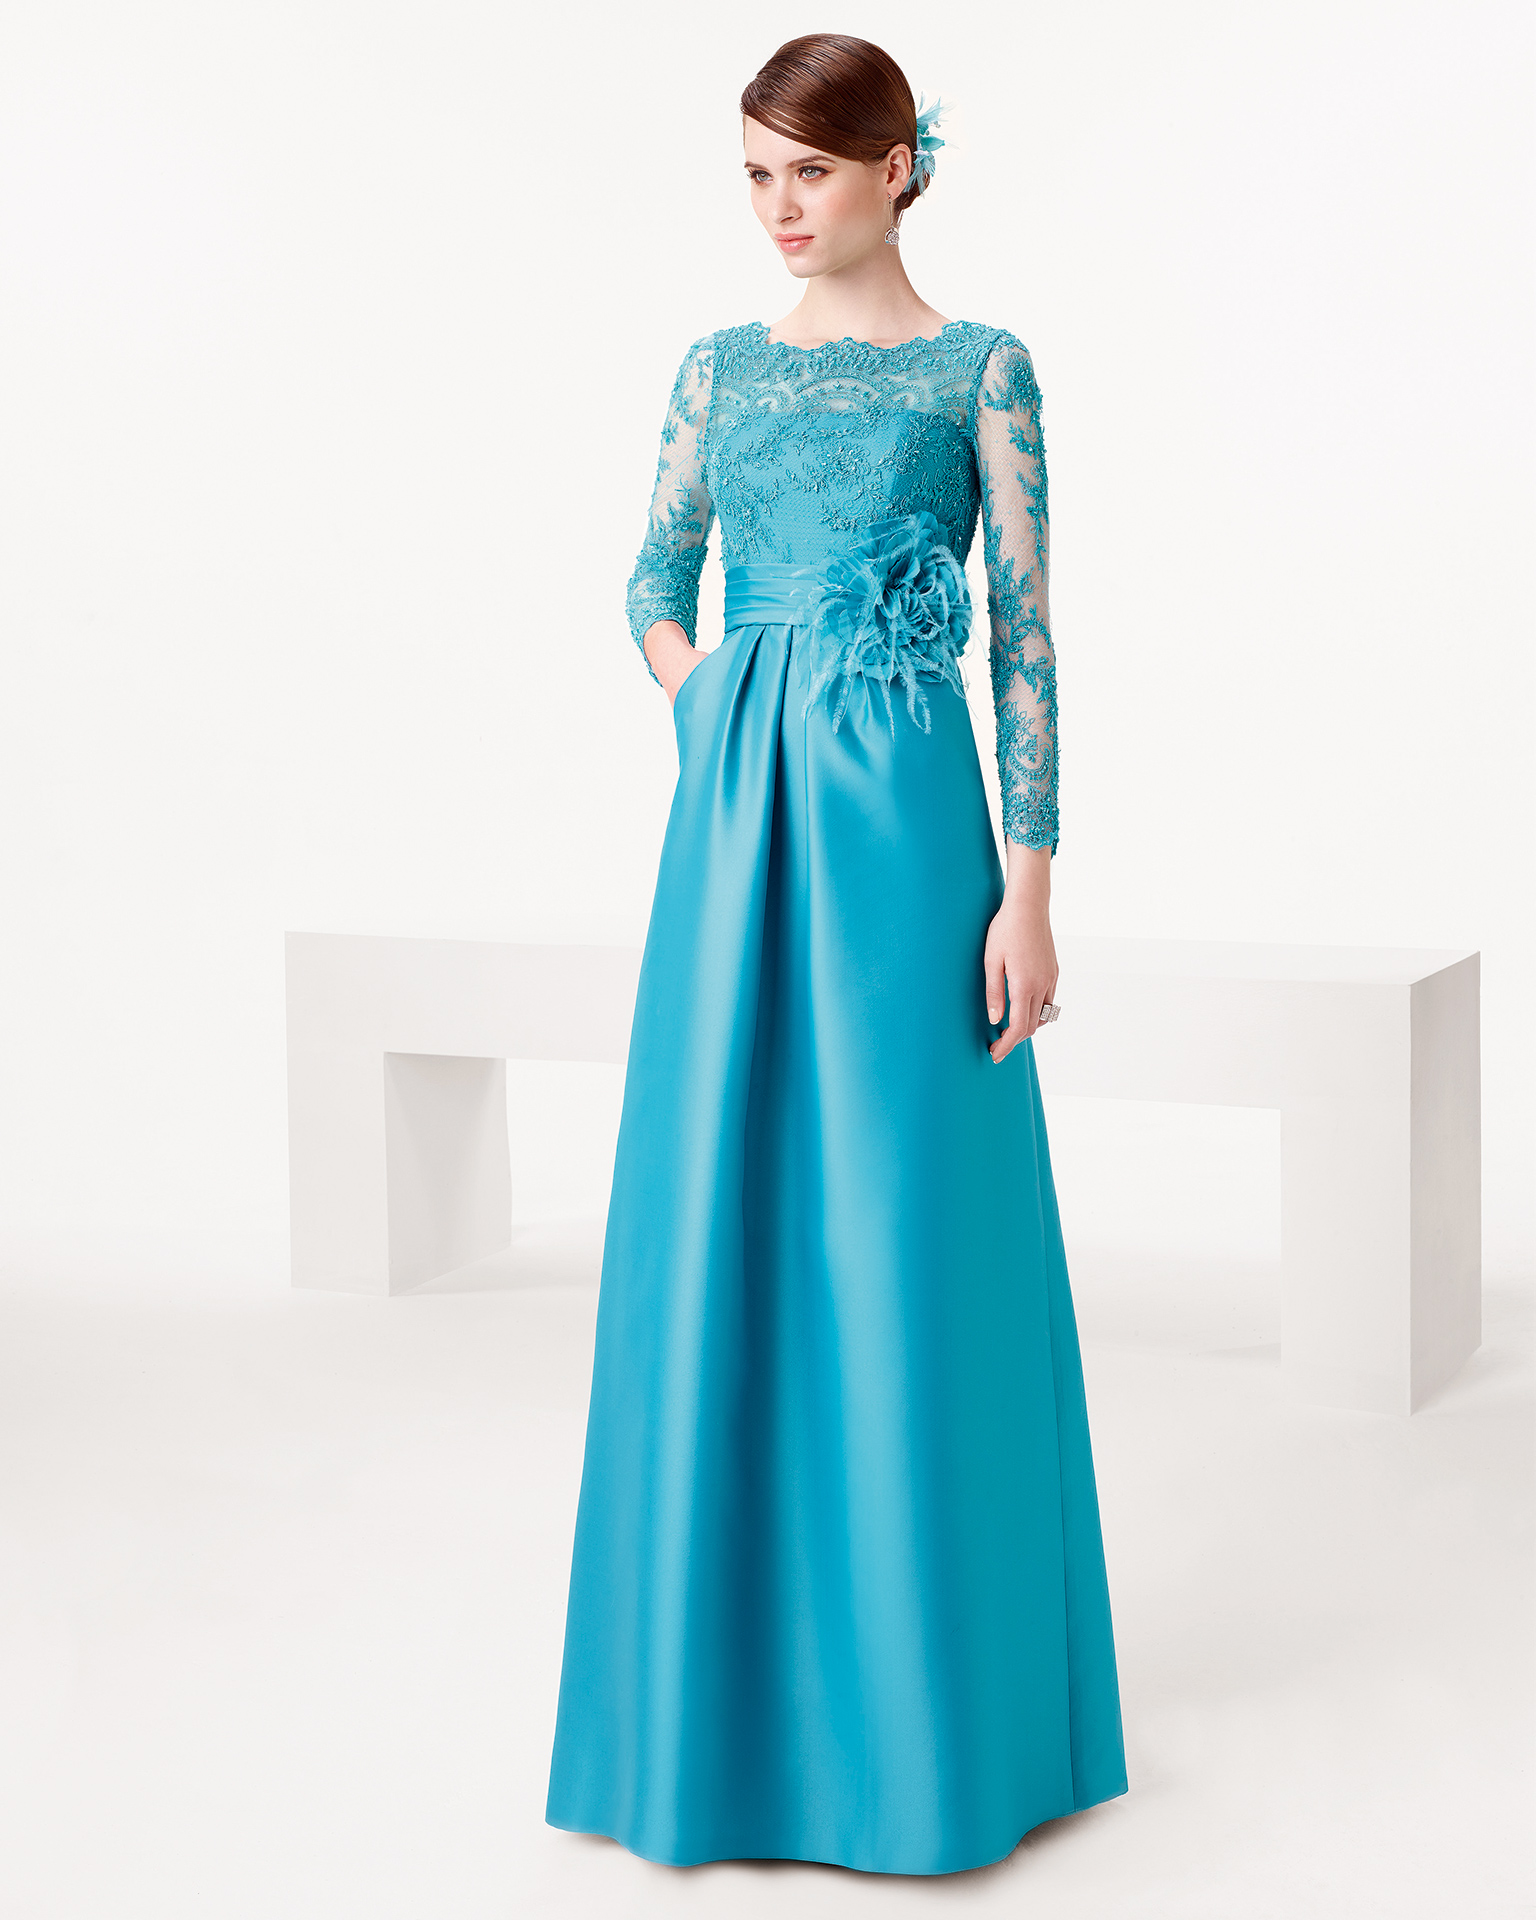 A-line Bateau 3/4 Length Sleeve Appliques Lace Hand Made Flowers Floor-length Long Satin Evening Dresses